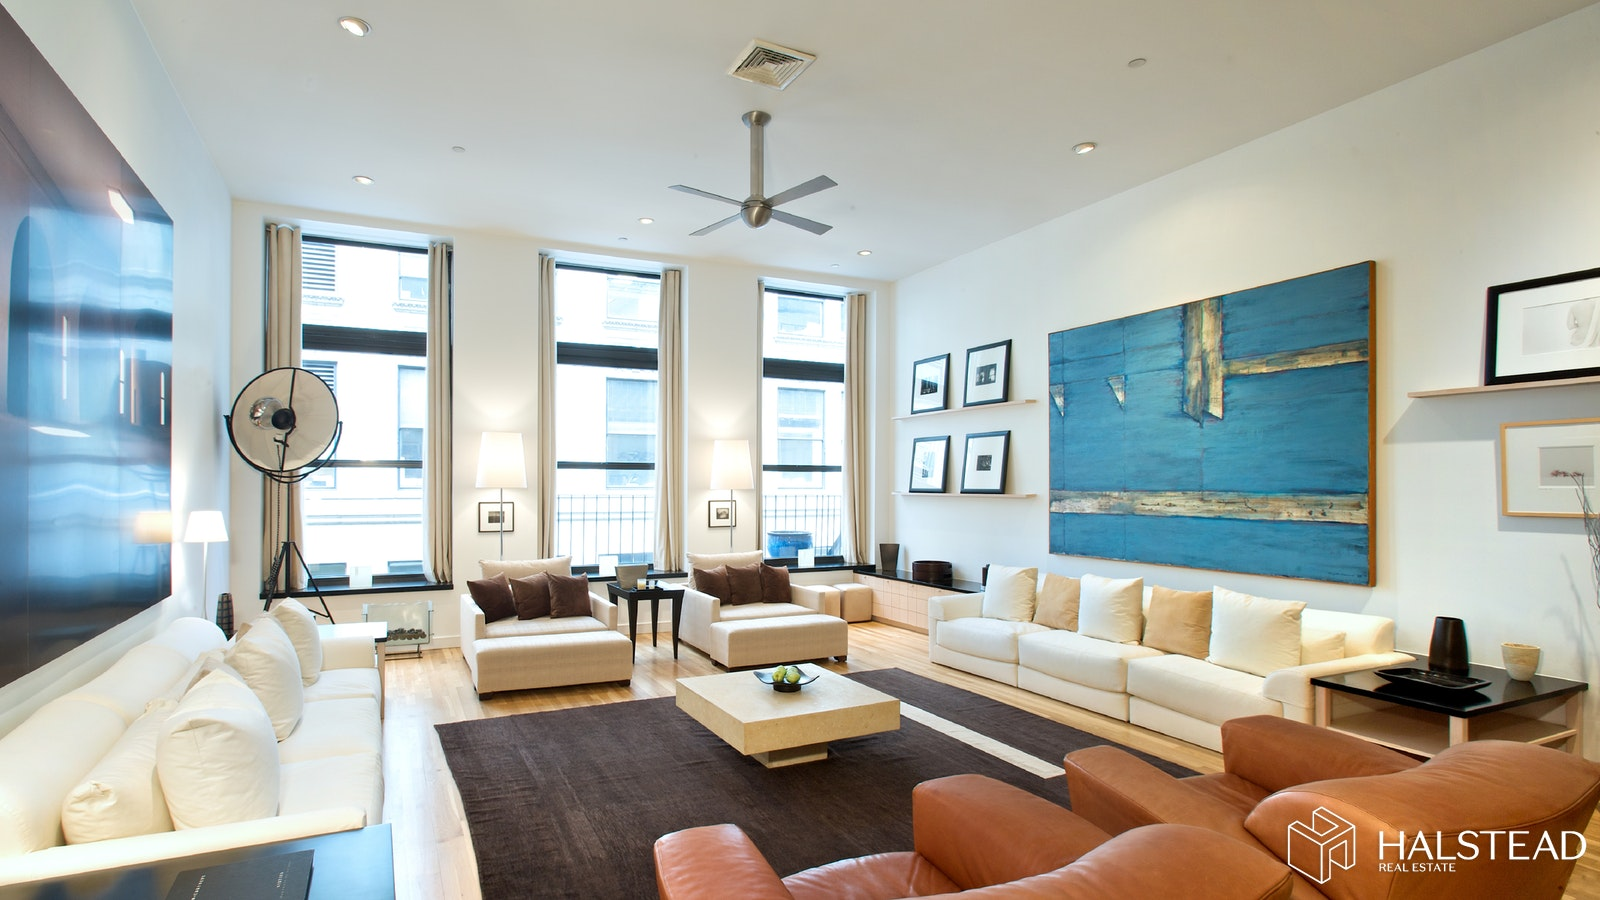 Apartment for sale at 129 Duane Street, Apt 2T